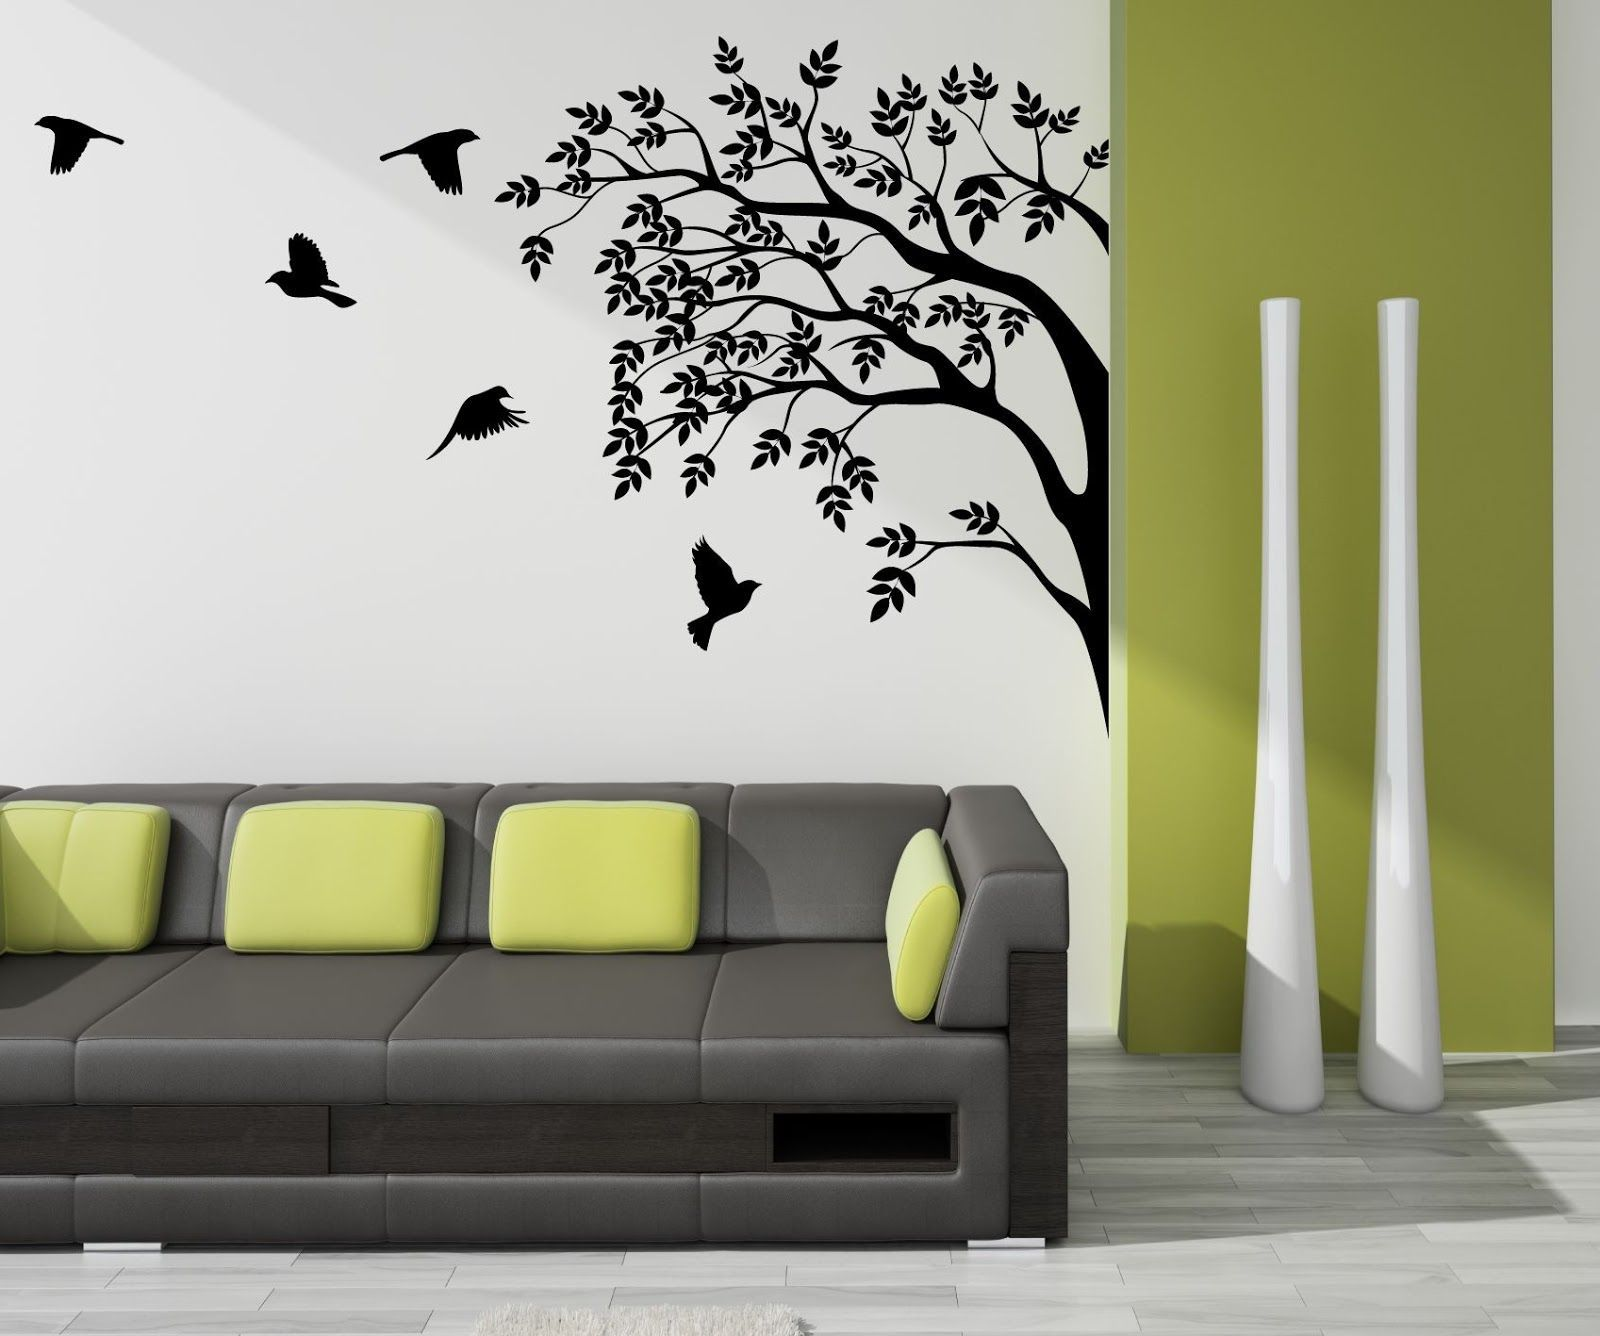 Tree Painted On Wall In Corner - Google Search